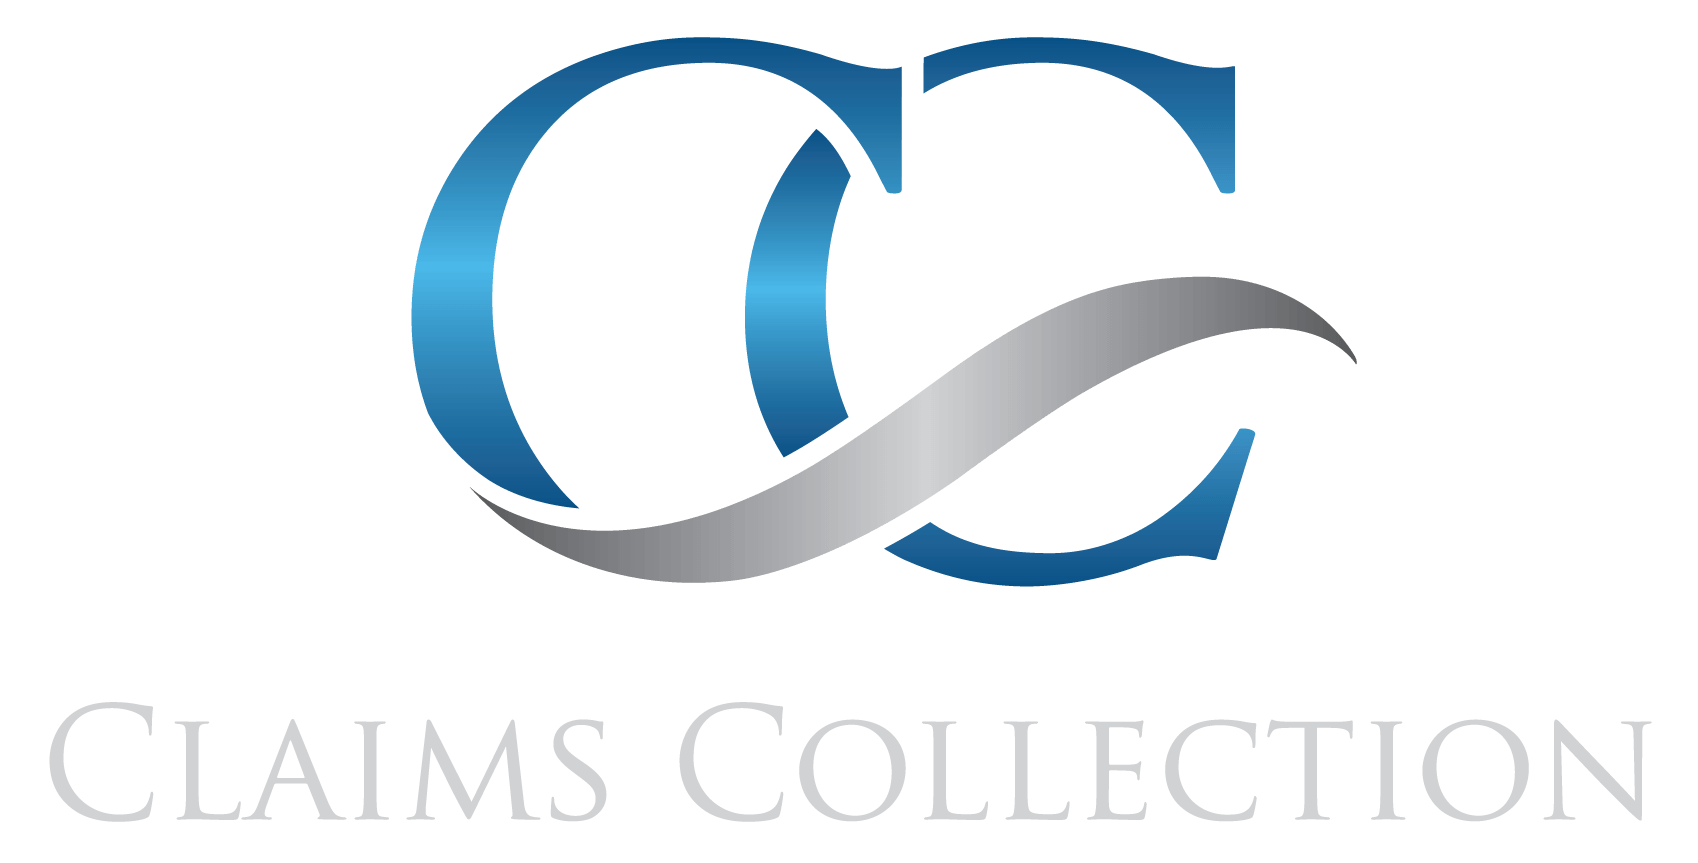 Claims Collection